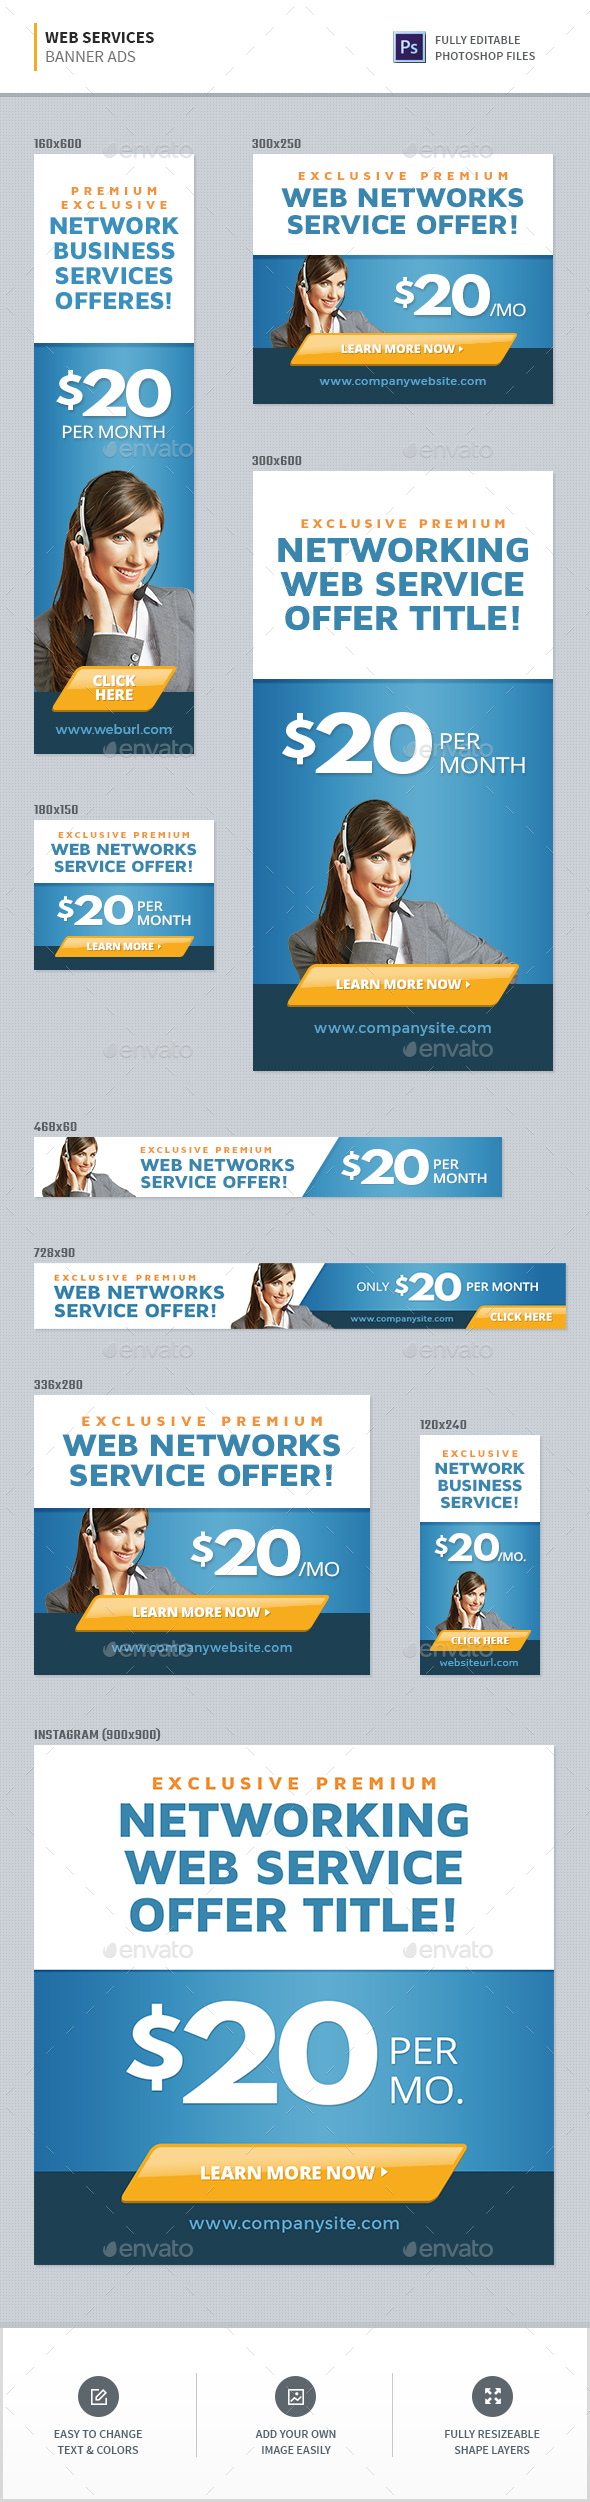 Web Services Banners - Banners & Ads Web Elements